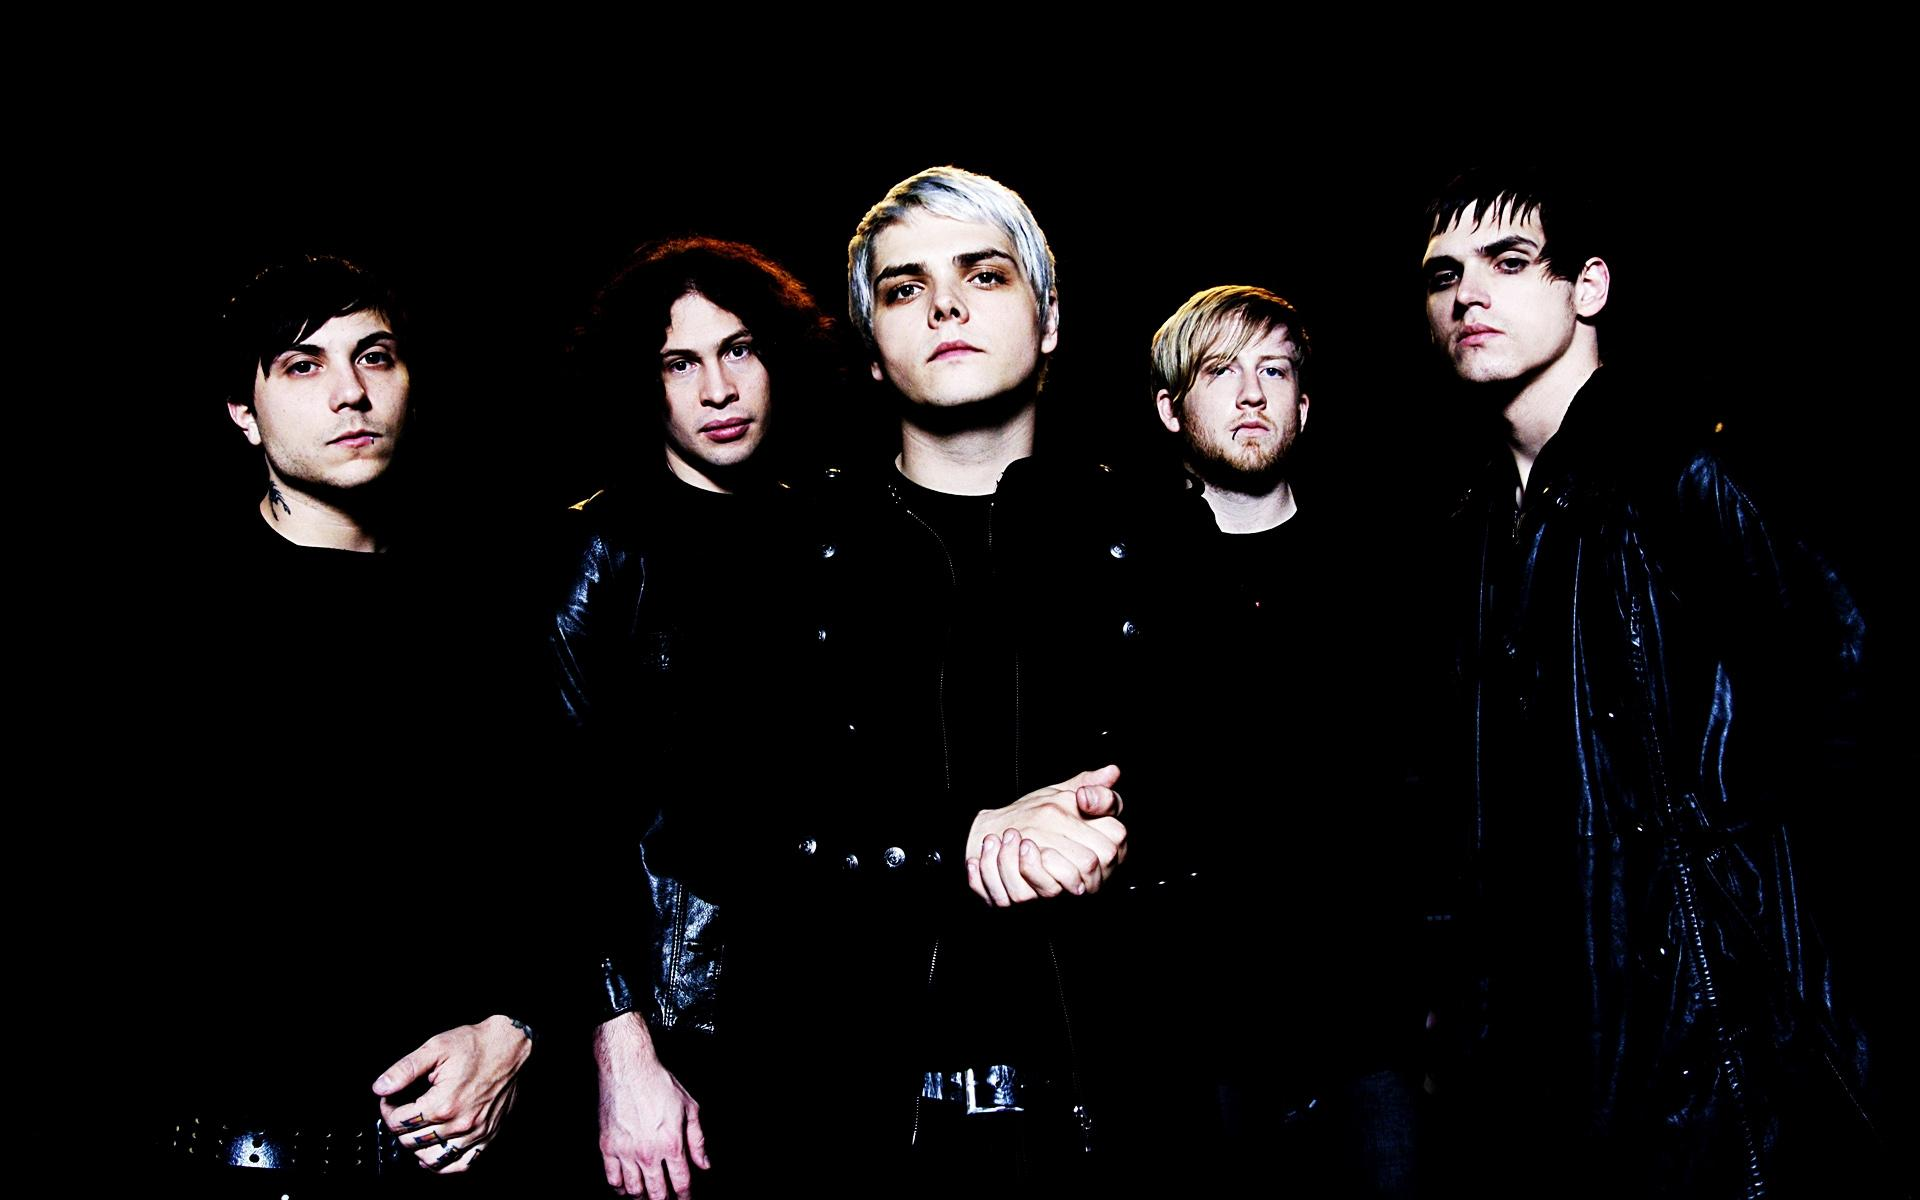 Обои My Chemical Romance 1920x1200